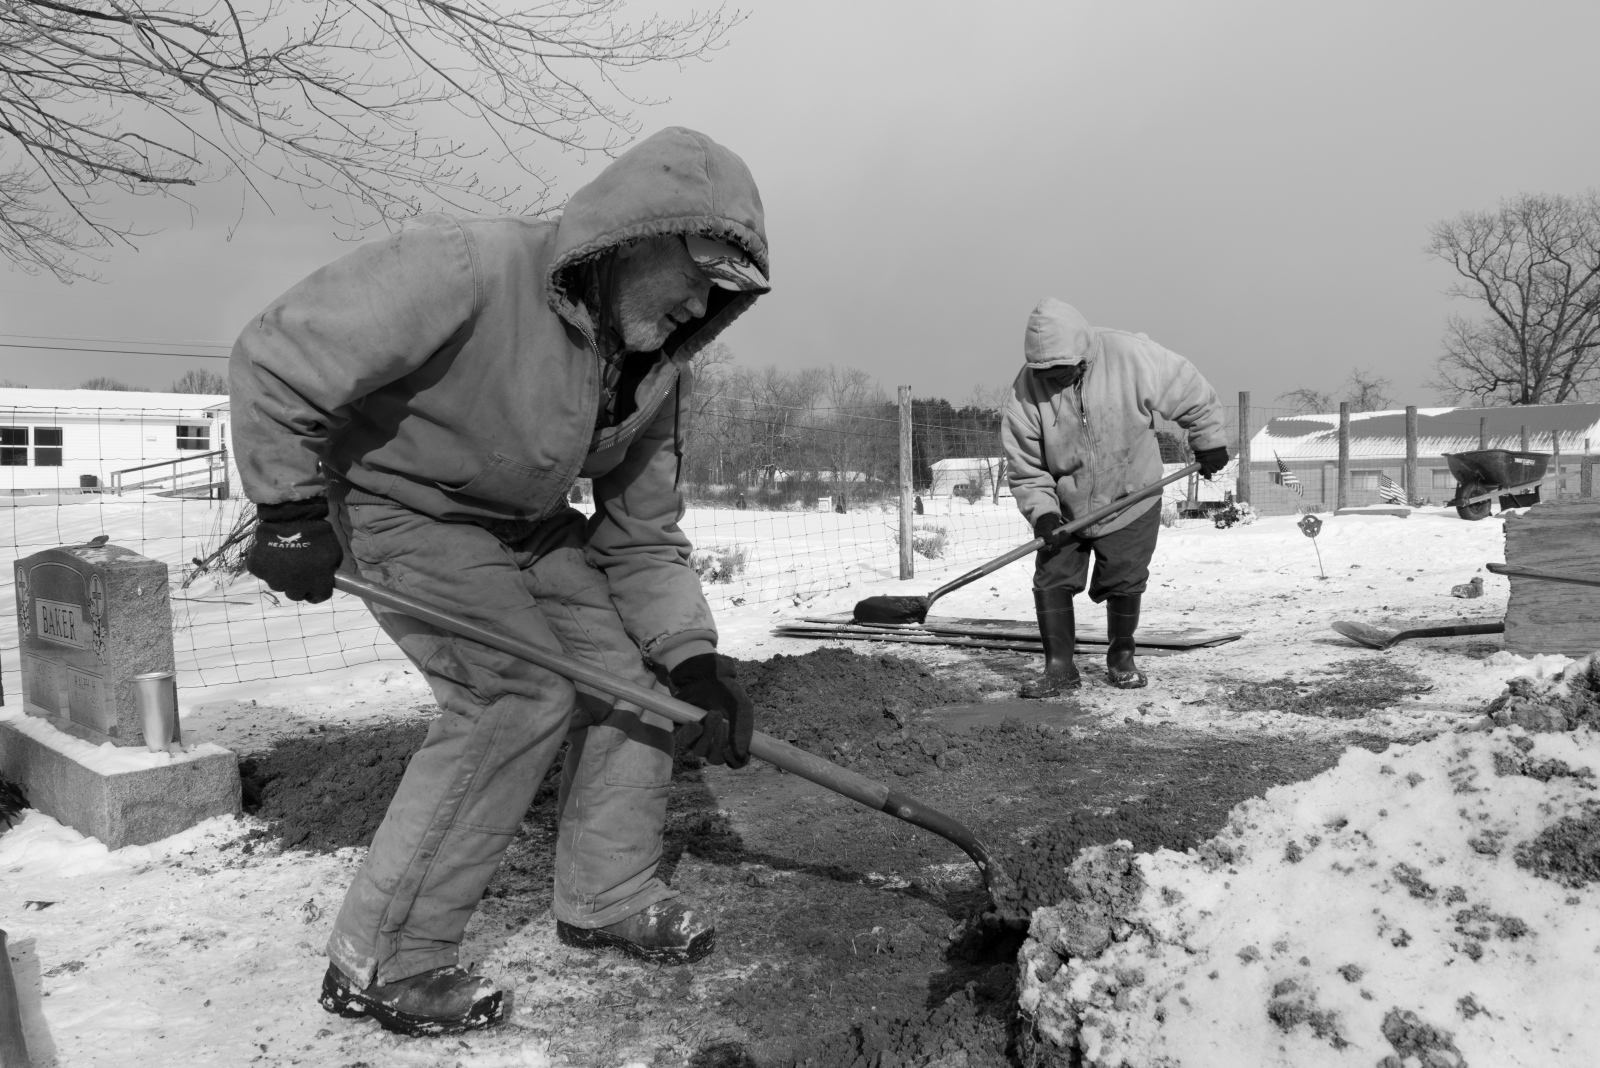 Jimmy Putman and Dorsel Bibbee dig a grave at Fairview Cemetery in southeast Ohio in February 2015.